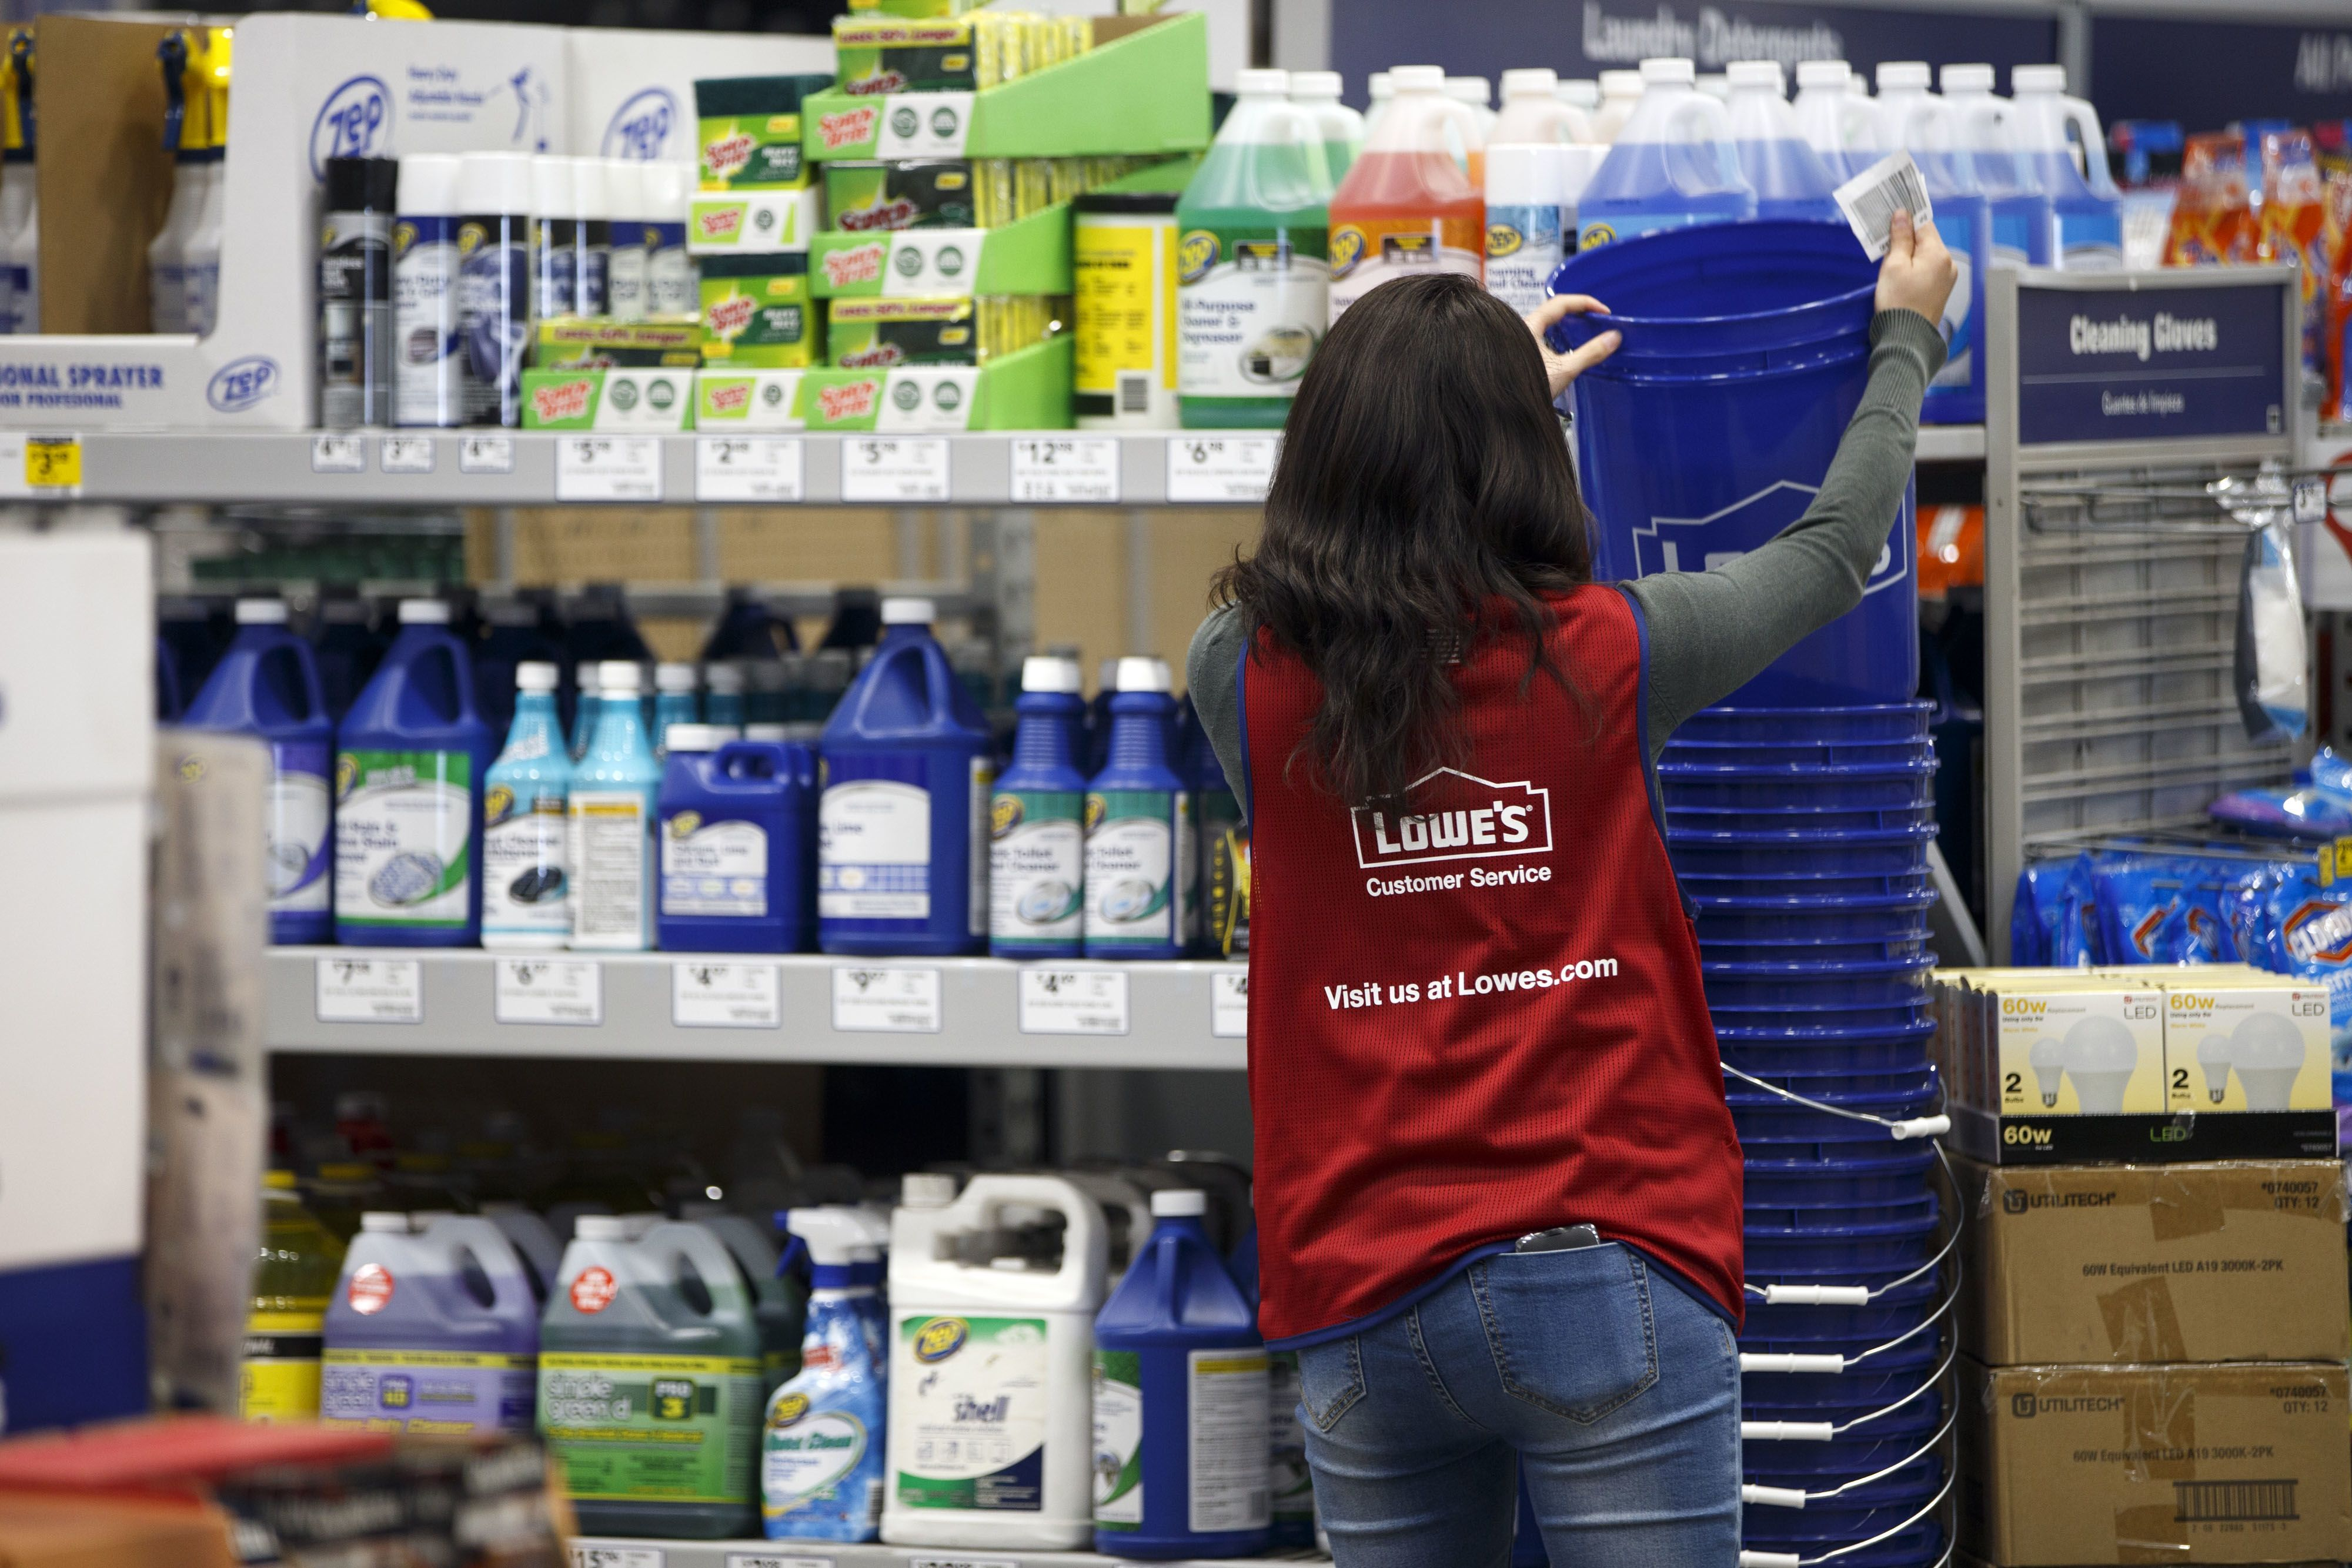 Home improvement retailer lowes has told thousands of